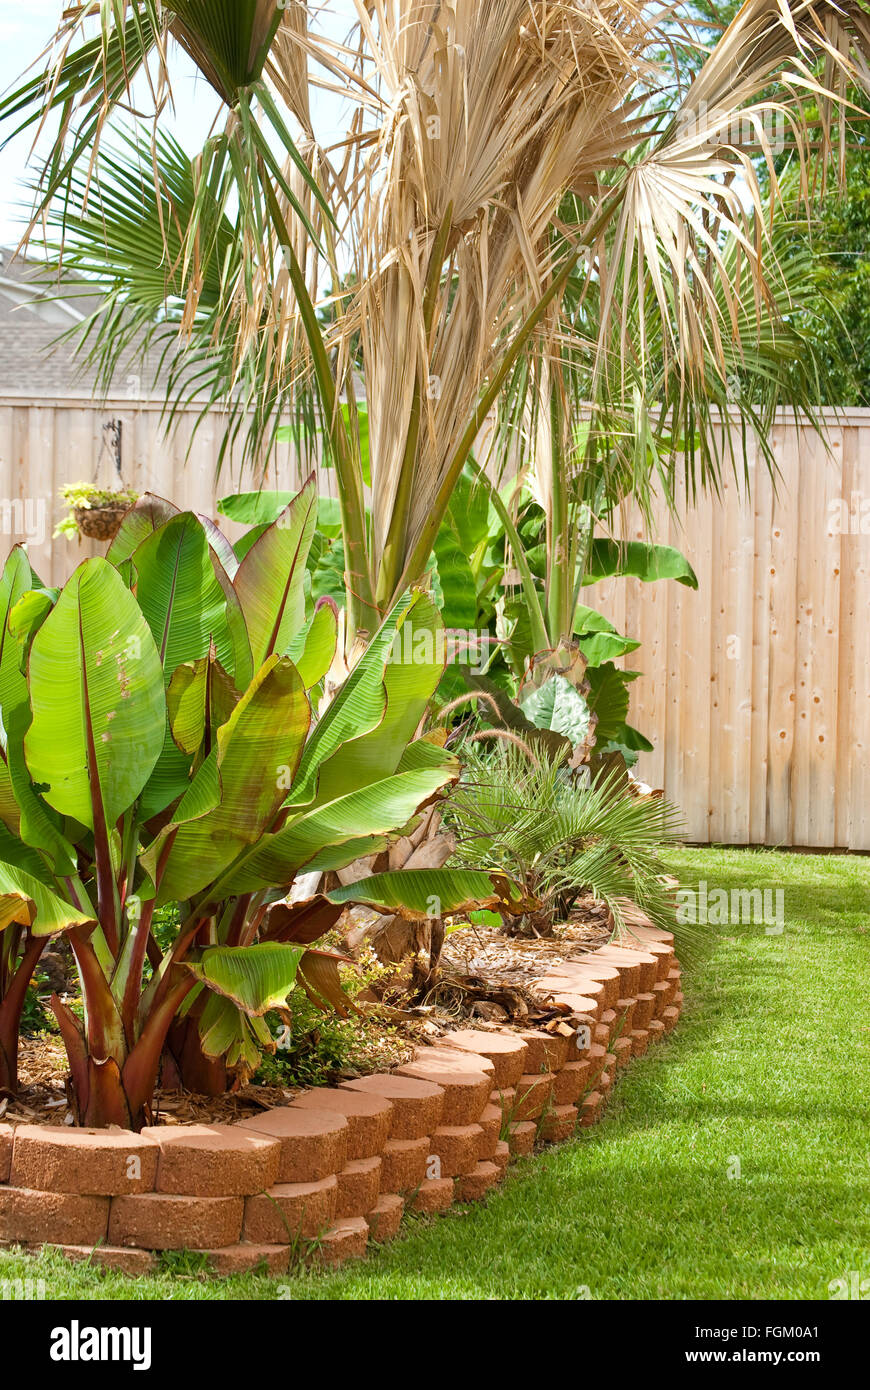 Flower Bed In Residential Backyard With Palm And Banana Trees With Stone  Retaining Wall